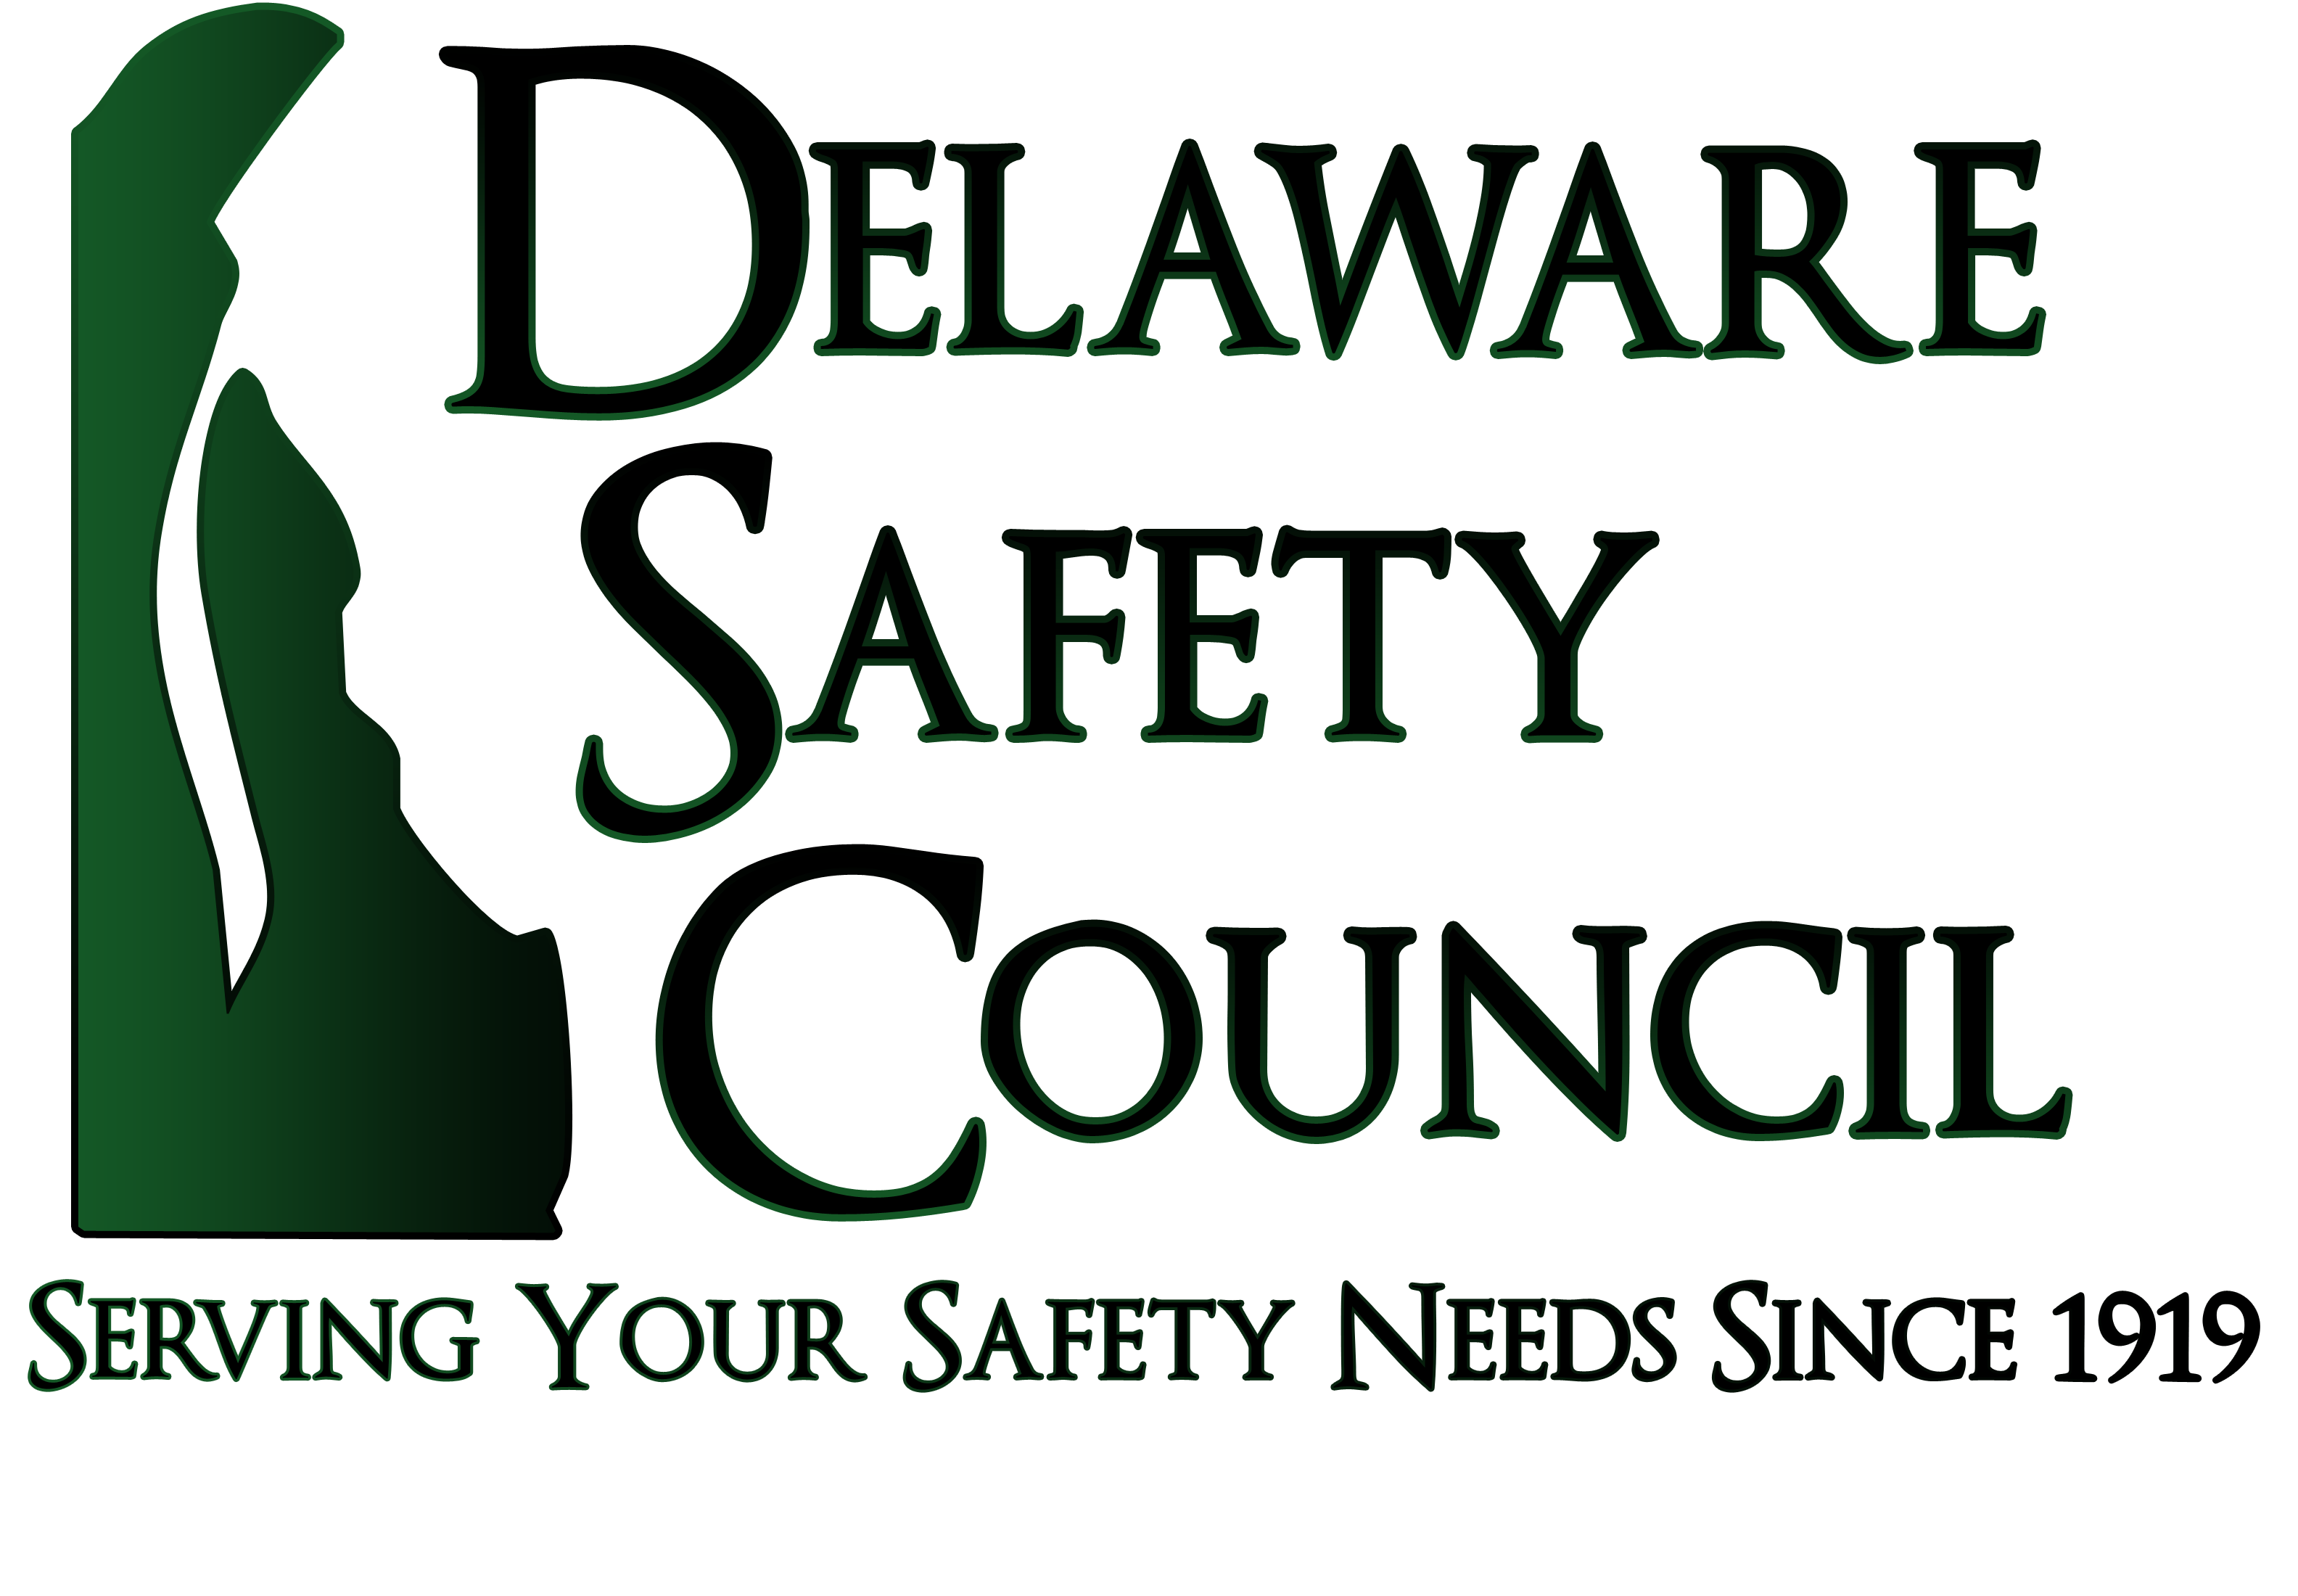 Delaware Safety Council Home